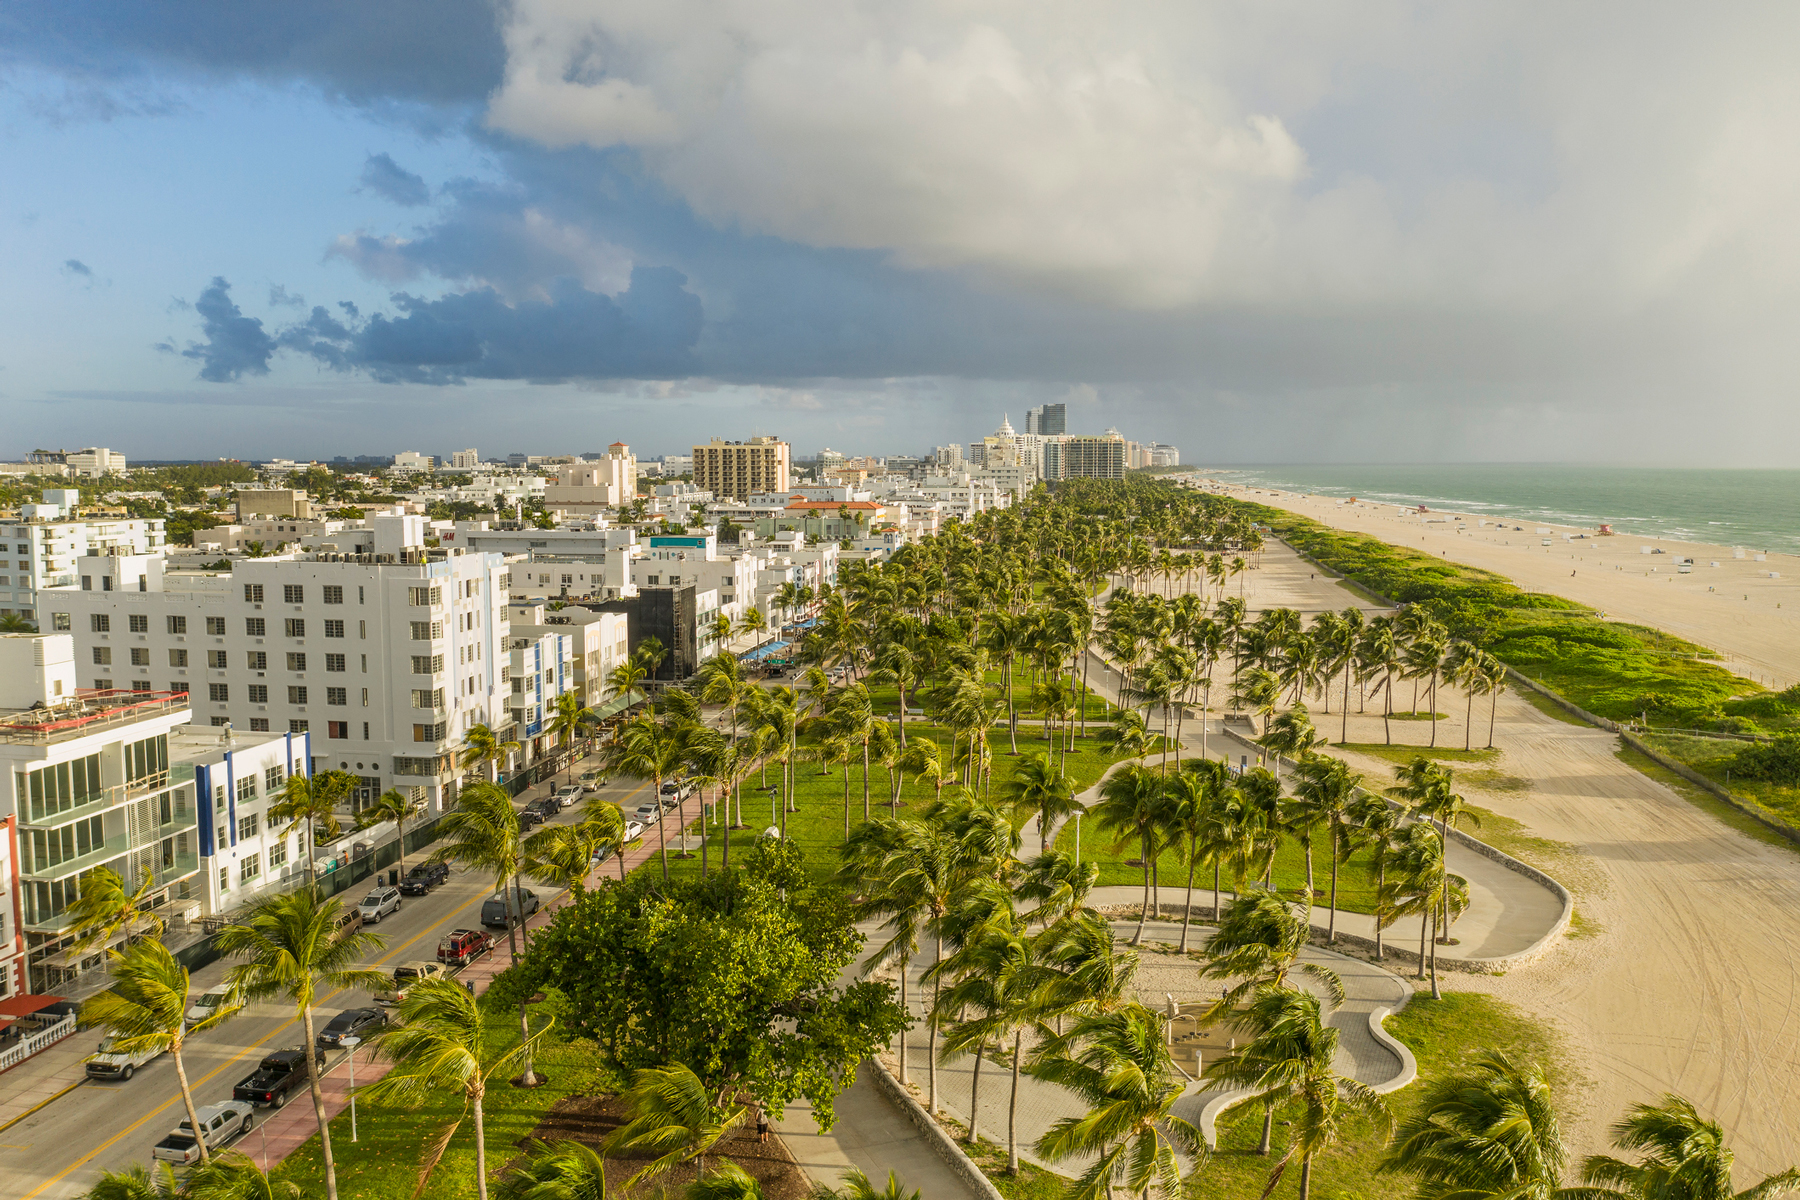 Aerial view of the art deco buildings on Ocean Drive, the Lummus Park and the beach of South Beach.